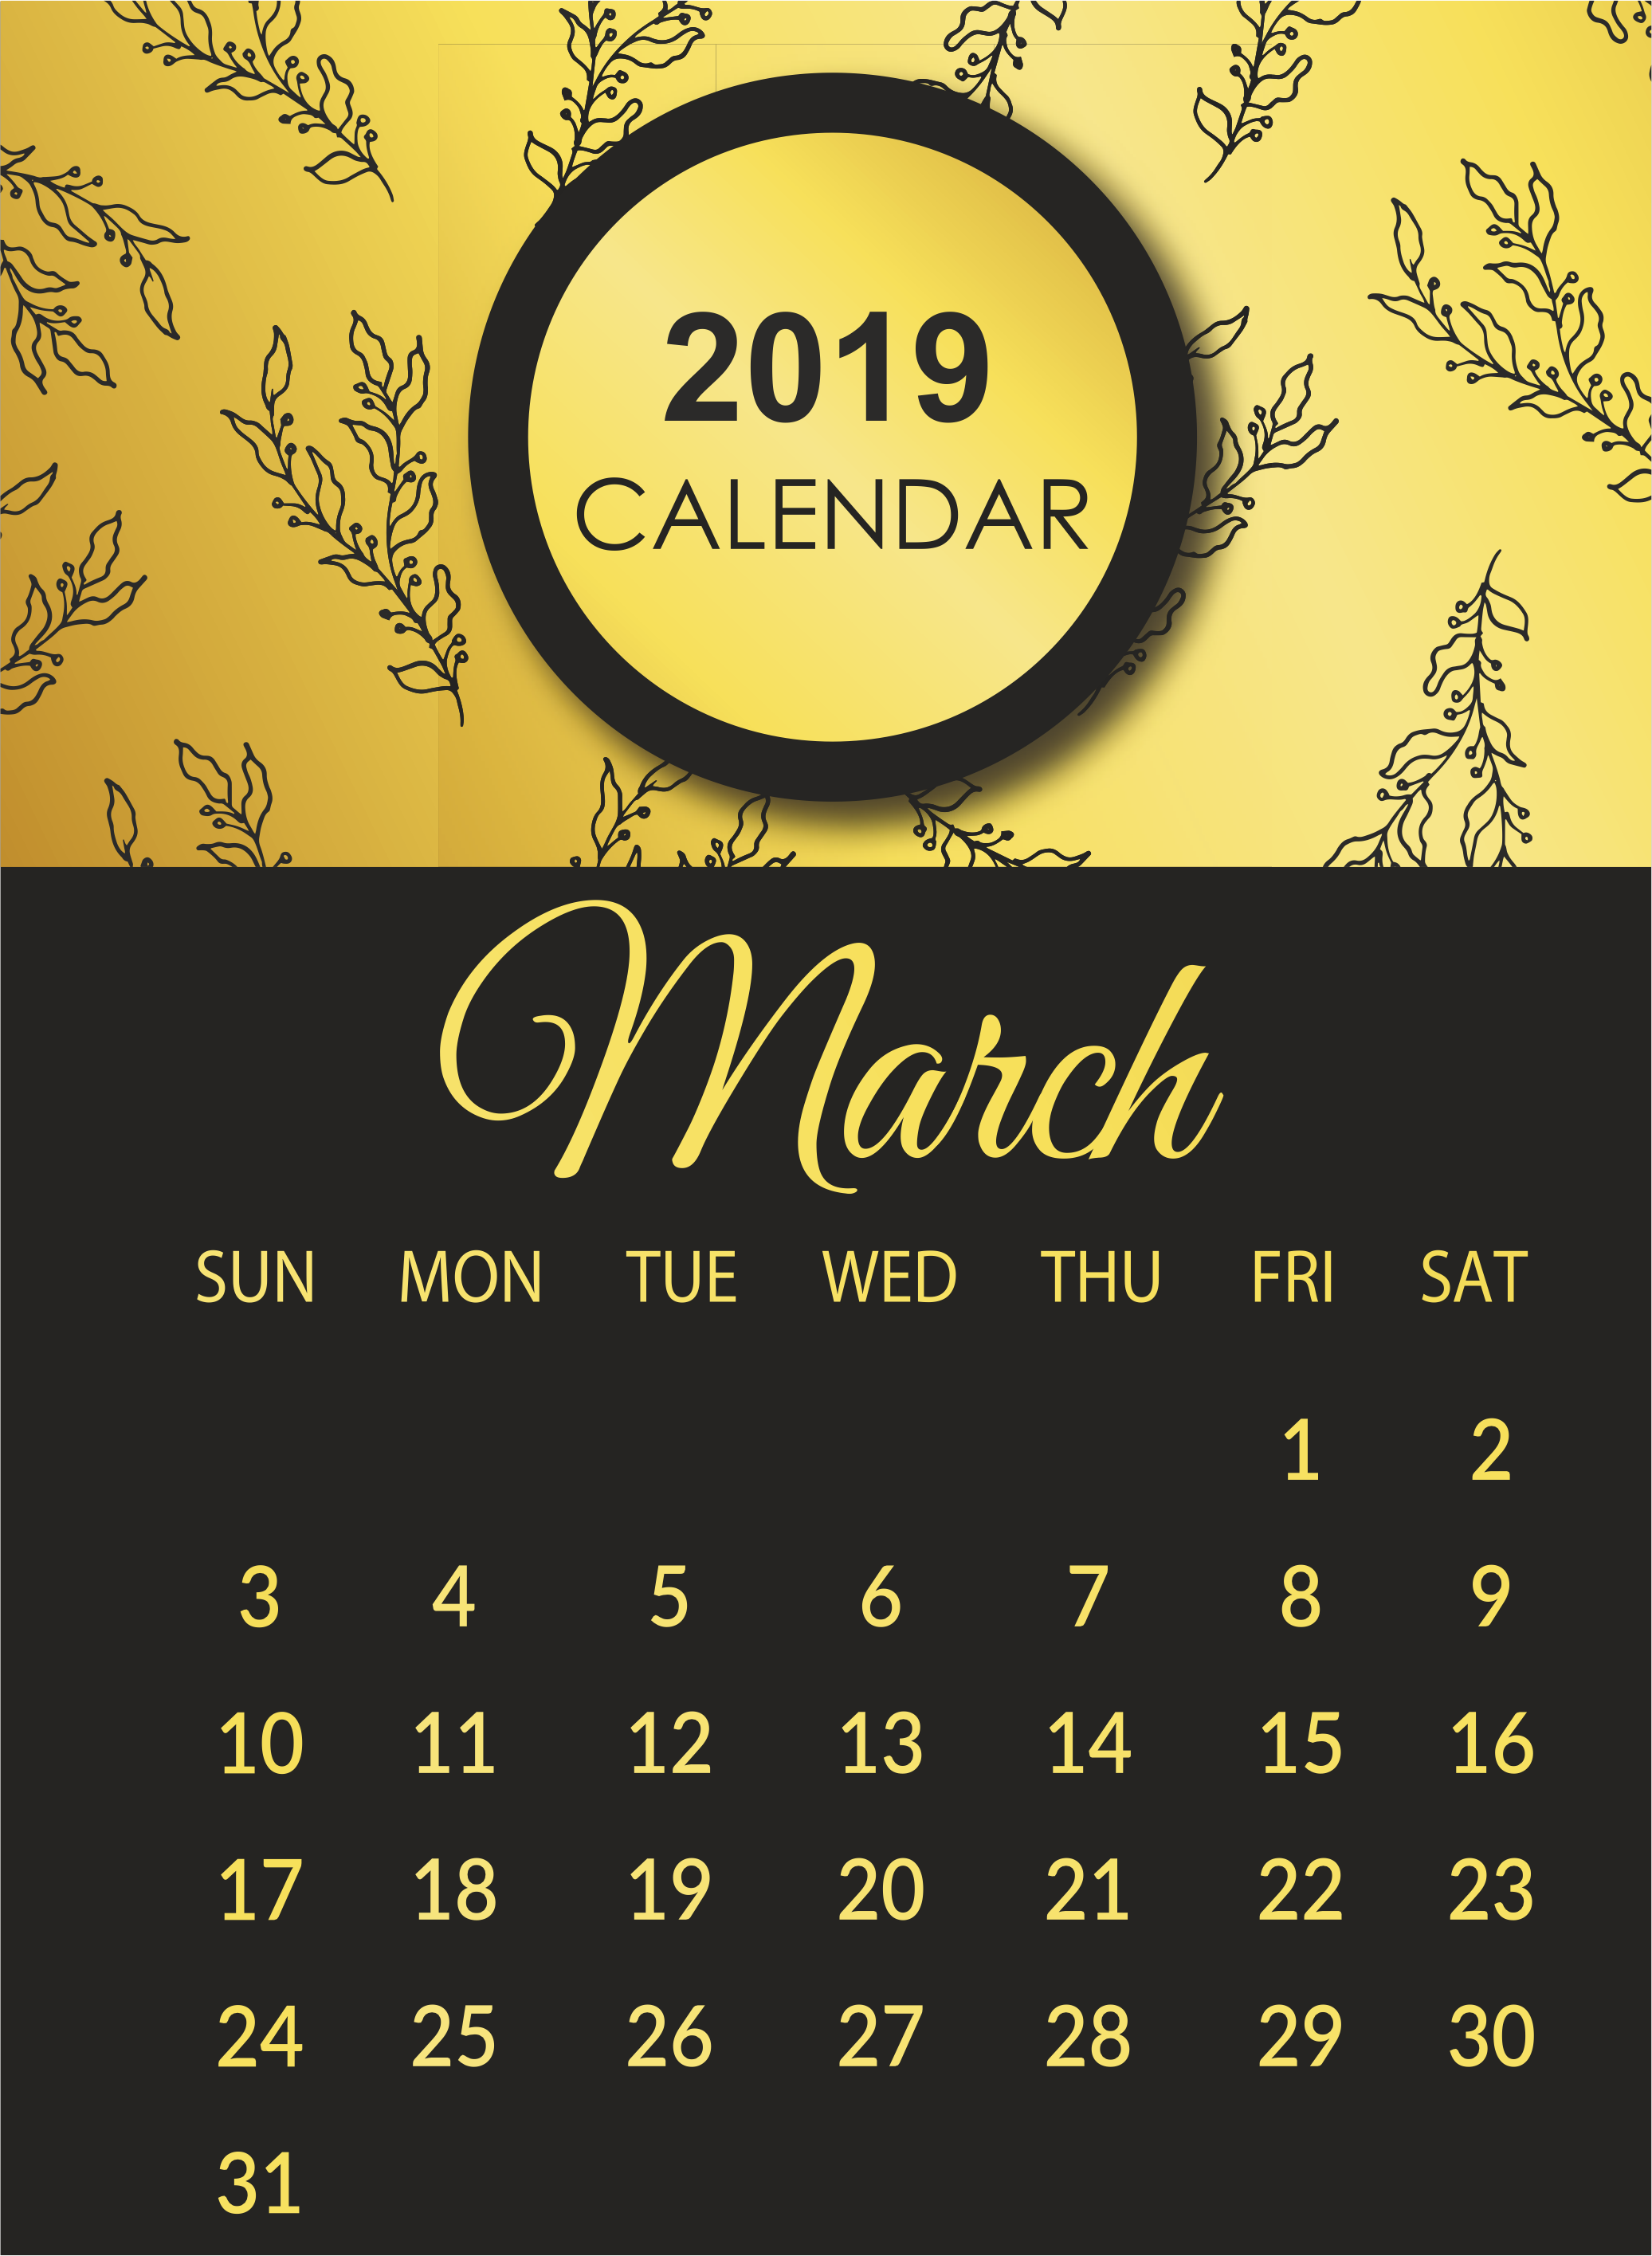 March 2019 Calendar Template Images